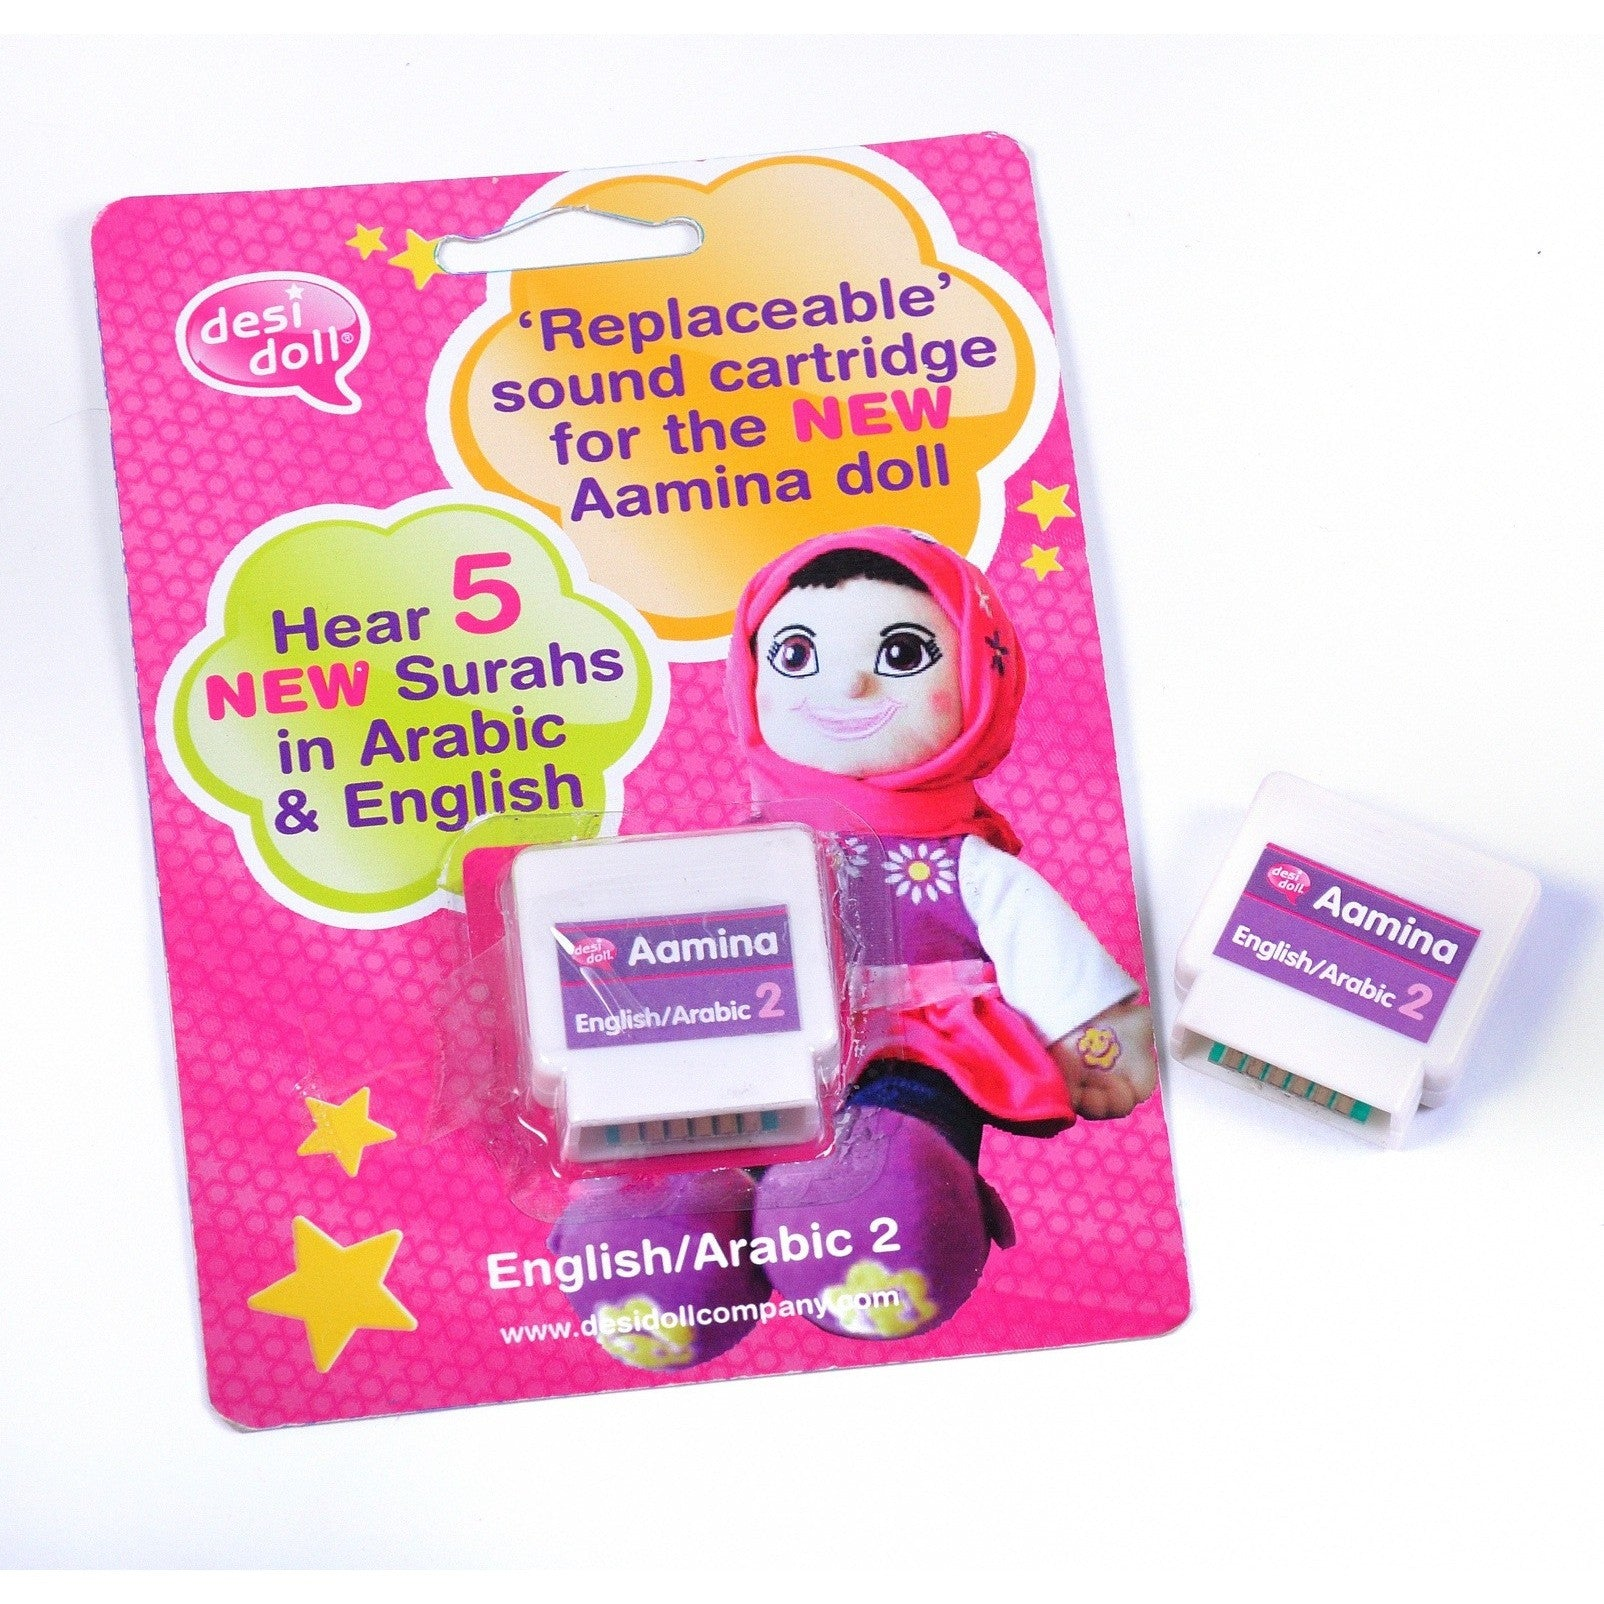 Aamina Doll: Replaceable Cartridge (5 New Surahs)